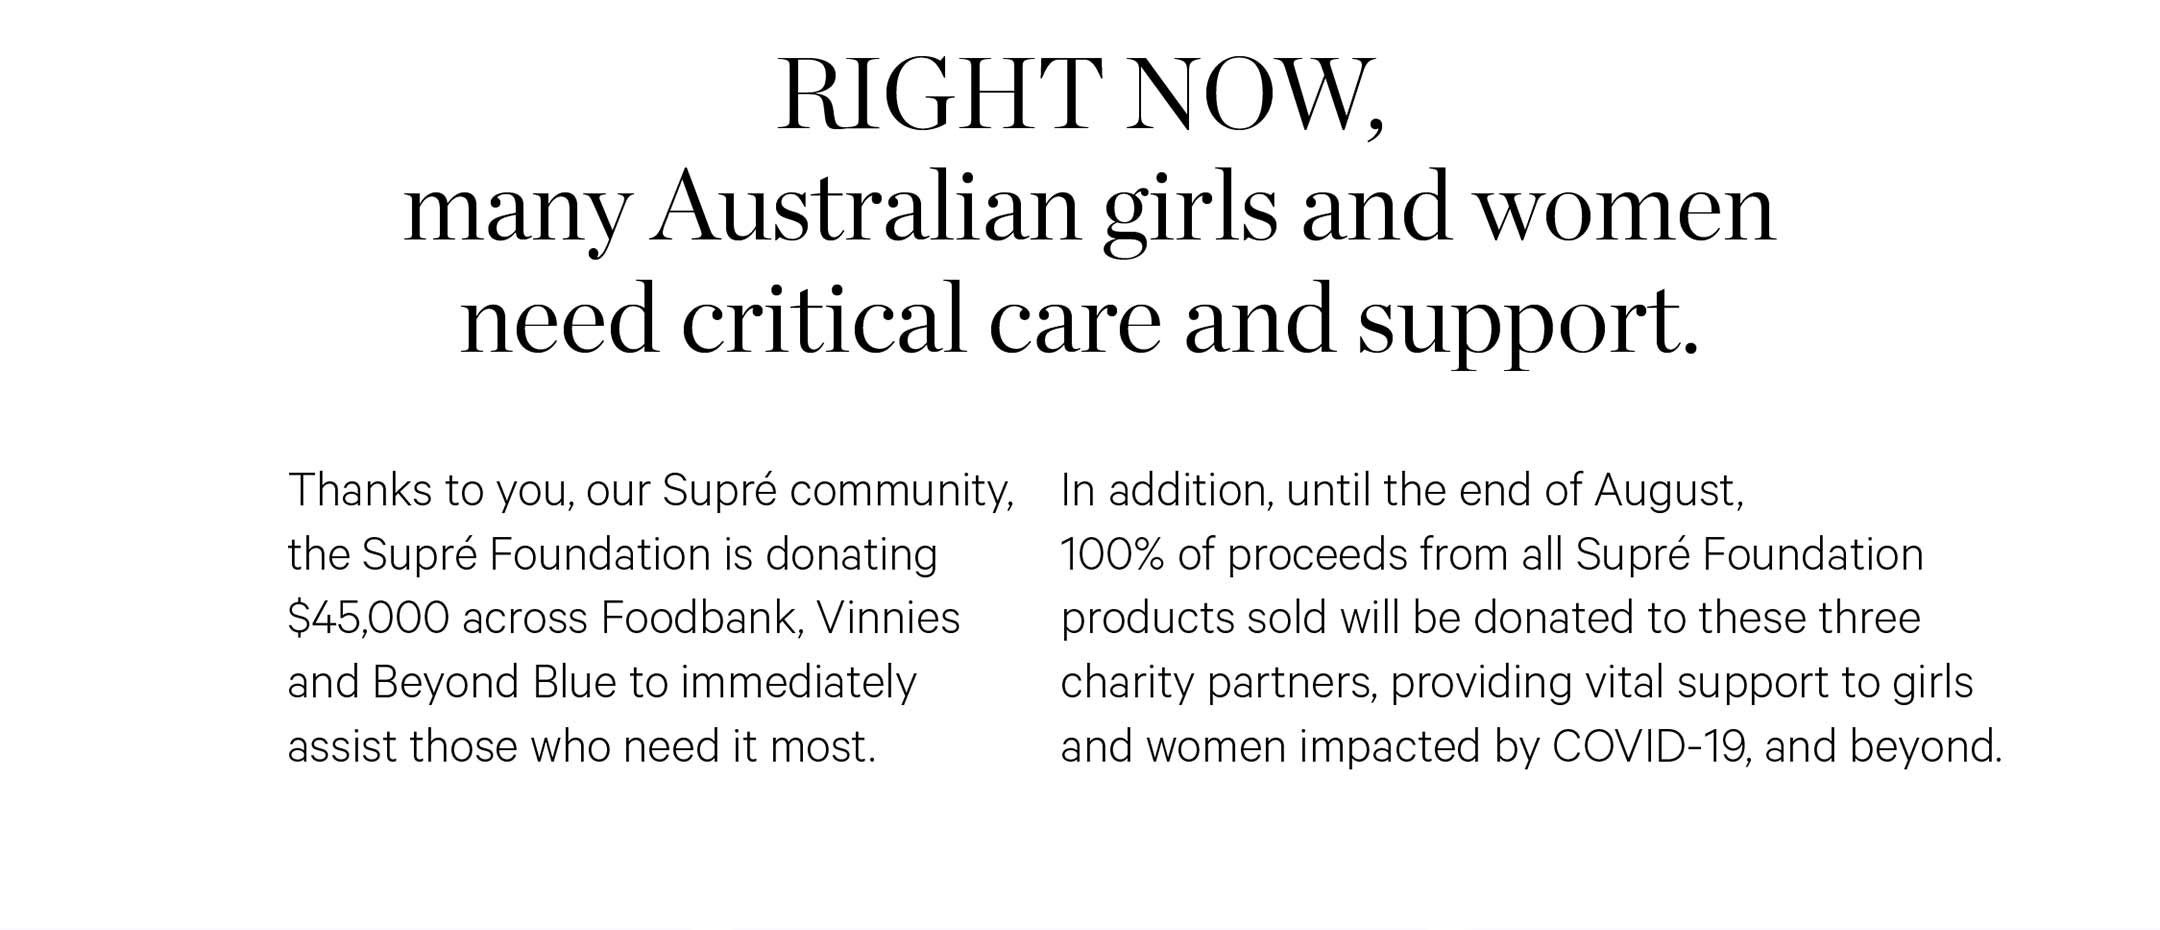 Care & Support To Girls & Women